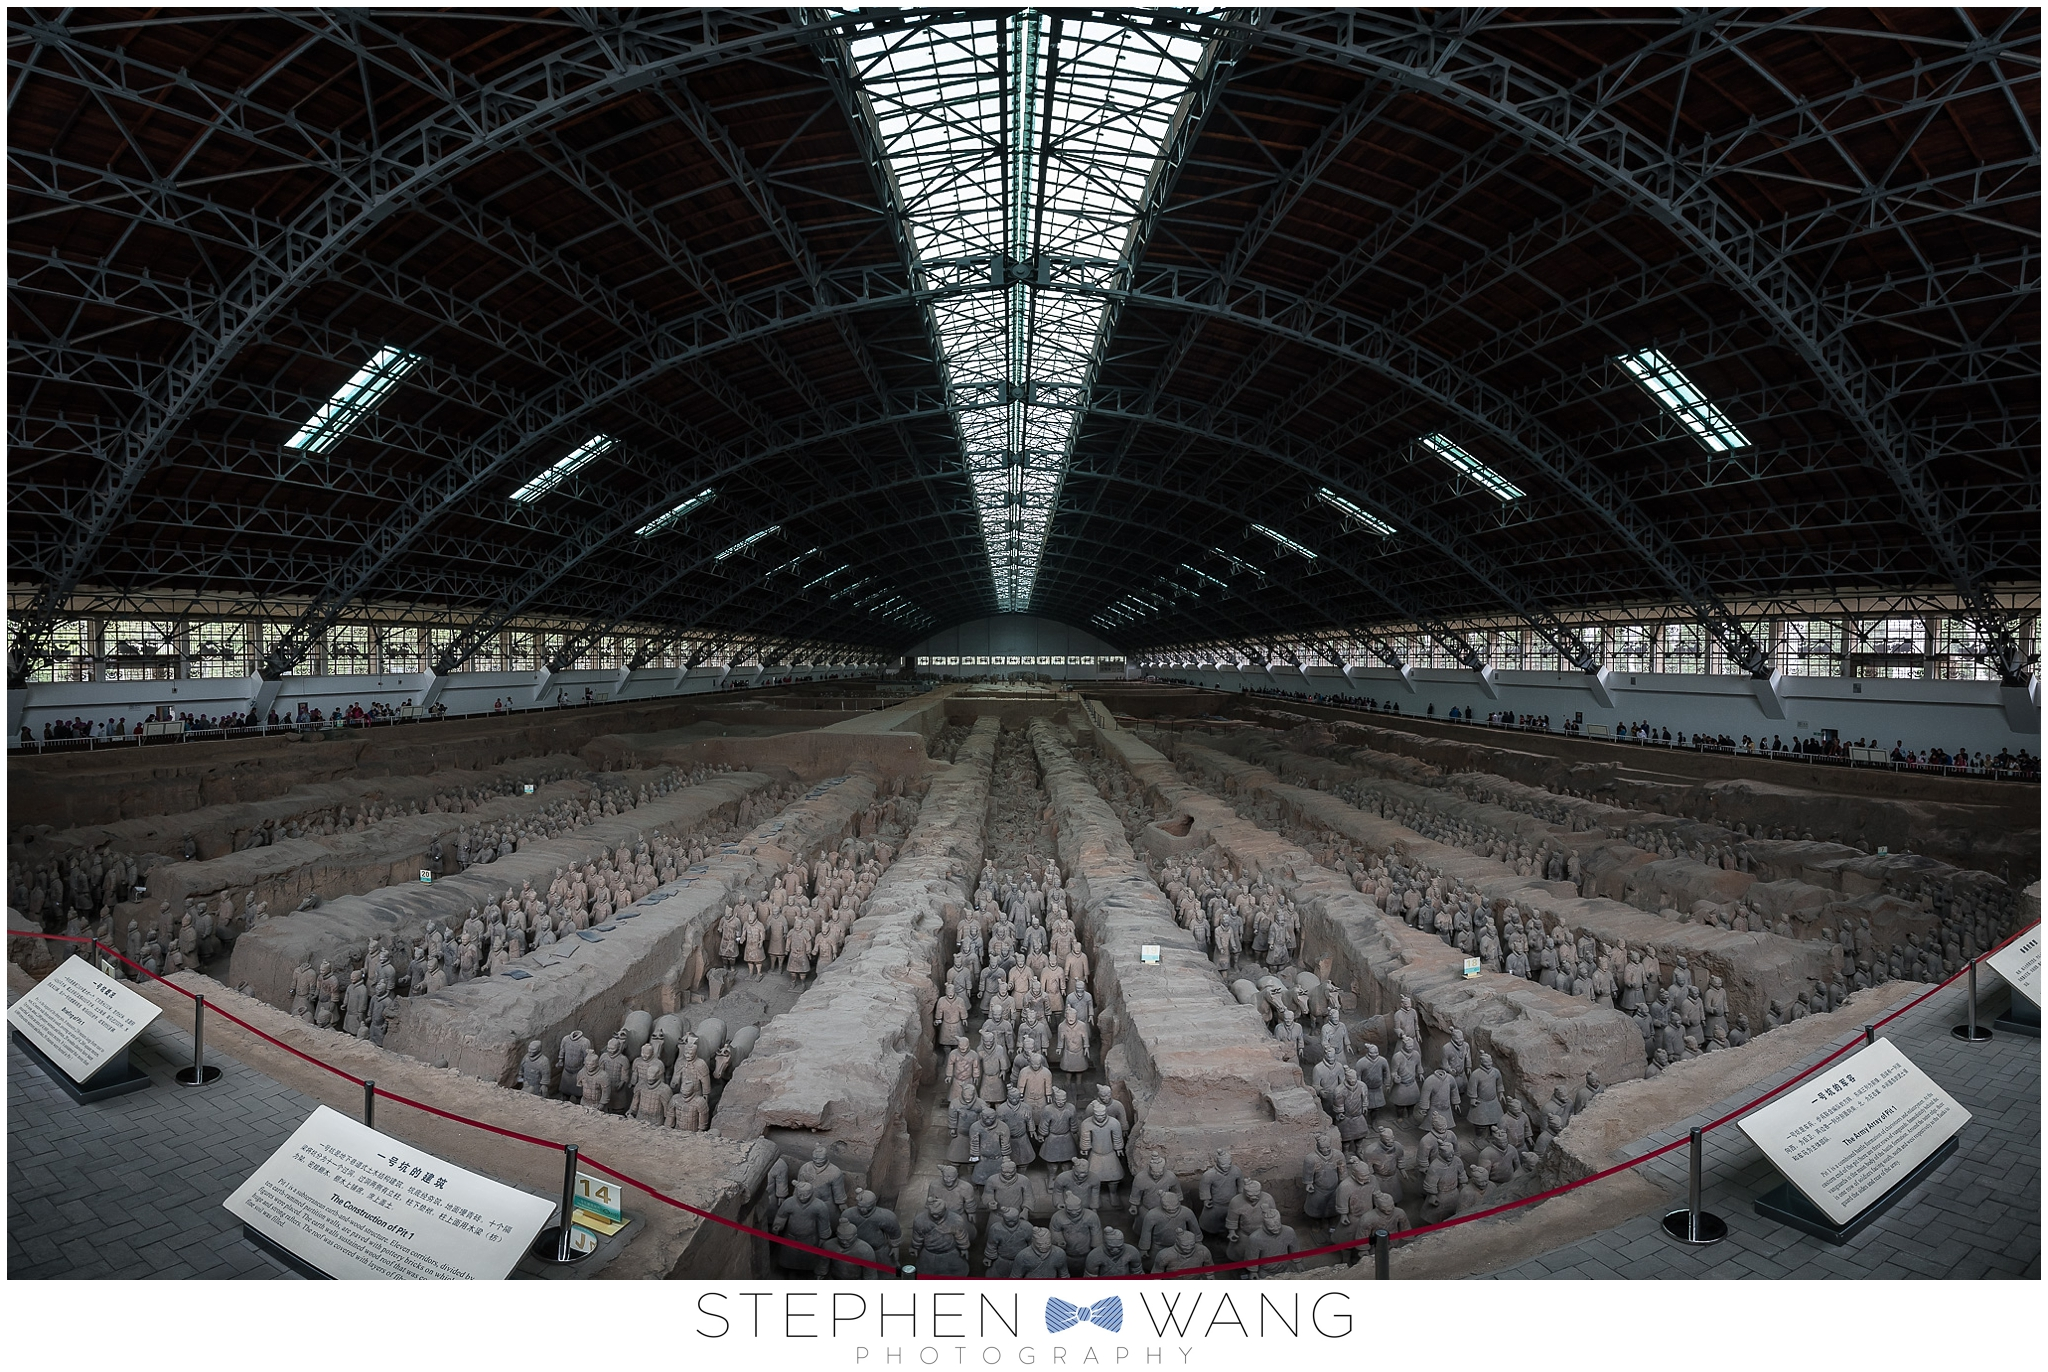 Our next stop was the archaeological site of the Terra Cotta Warriors.  8000+ life size soldiers were built for China's first emperor, Qin Shi Huang, to protect him during the afterlife.  A farmer discovered them in 1974 and was compensated about $5 and a basket of eggs.  Pretty raw deal for the farmer if you ask me.